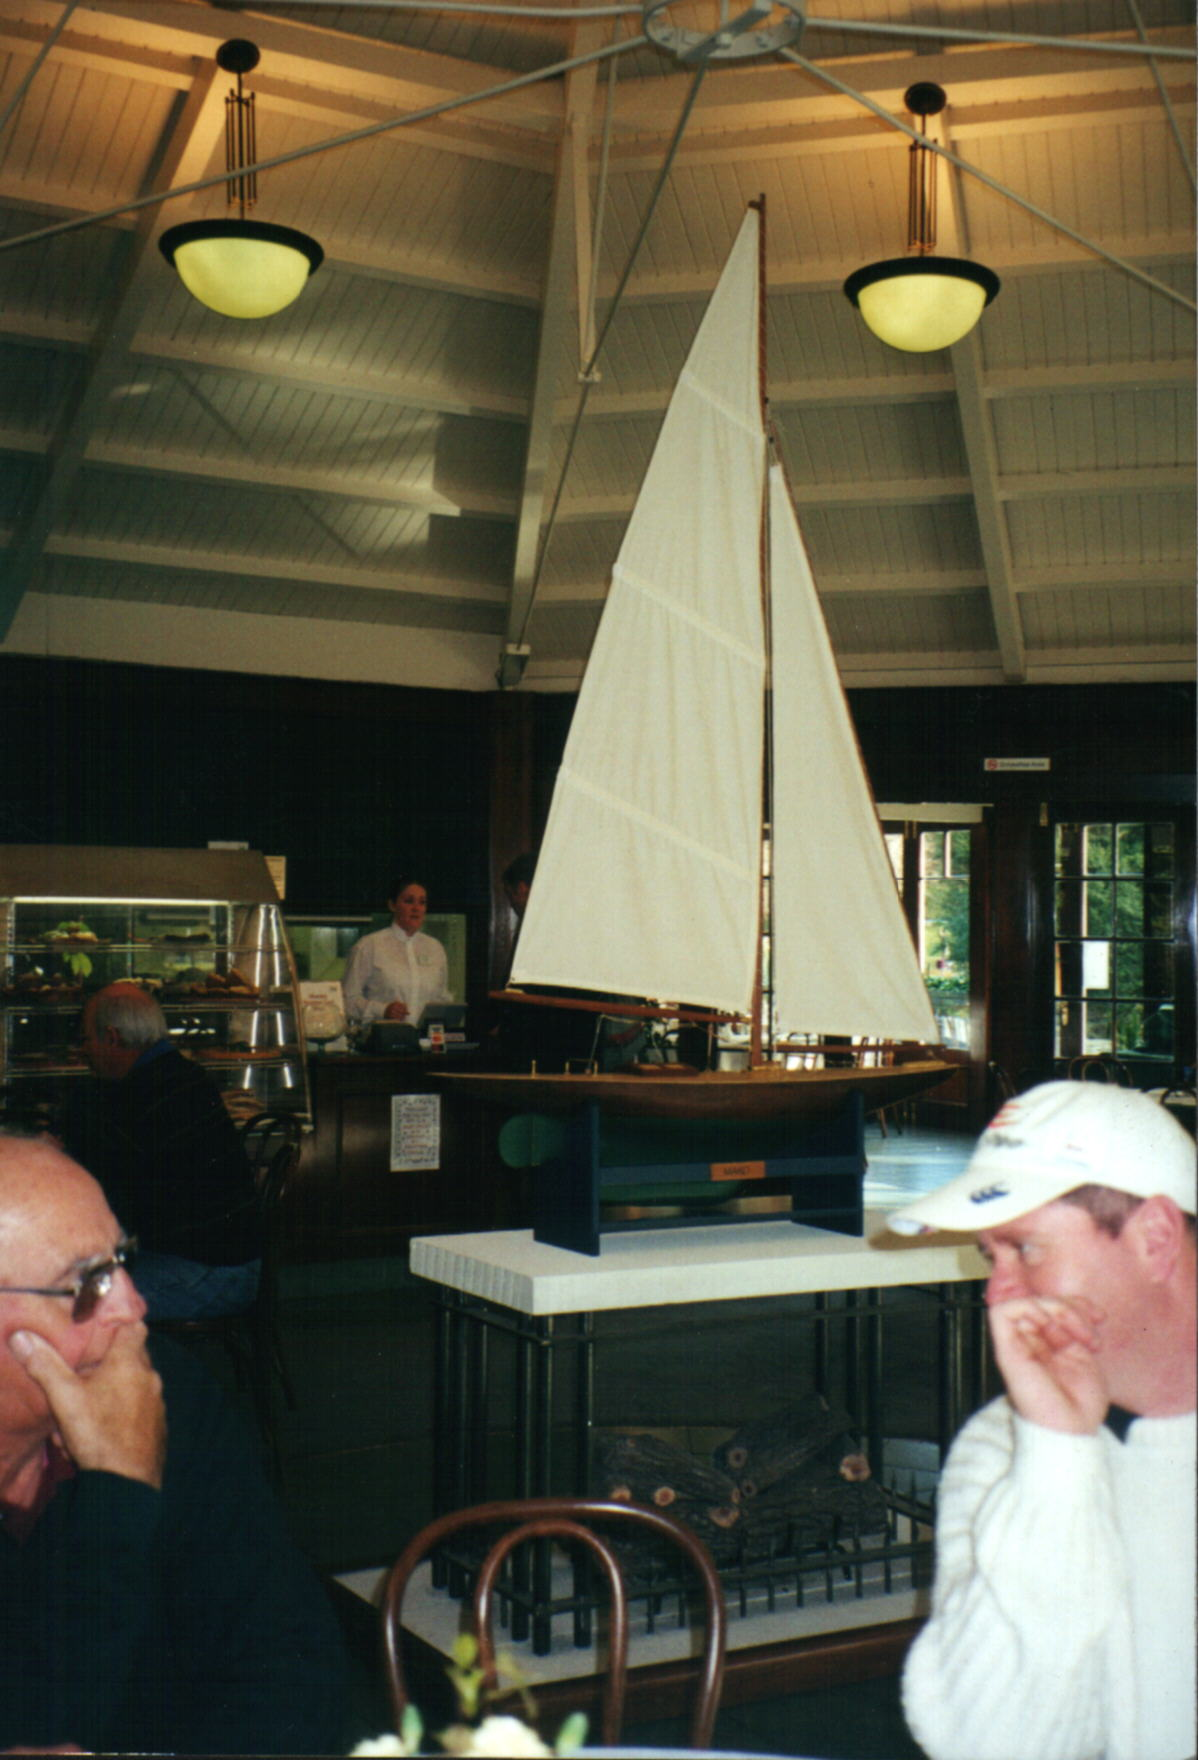 The Club's 102nd anniversary was celebrated witha luncheon, the boat in the background is